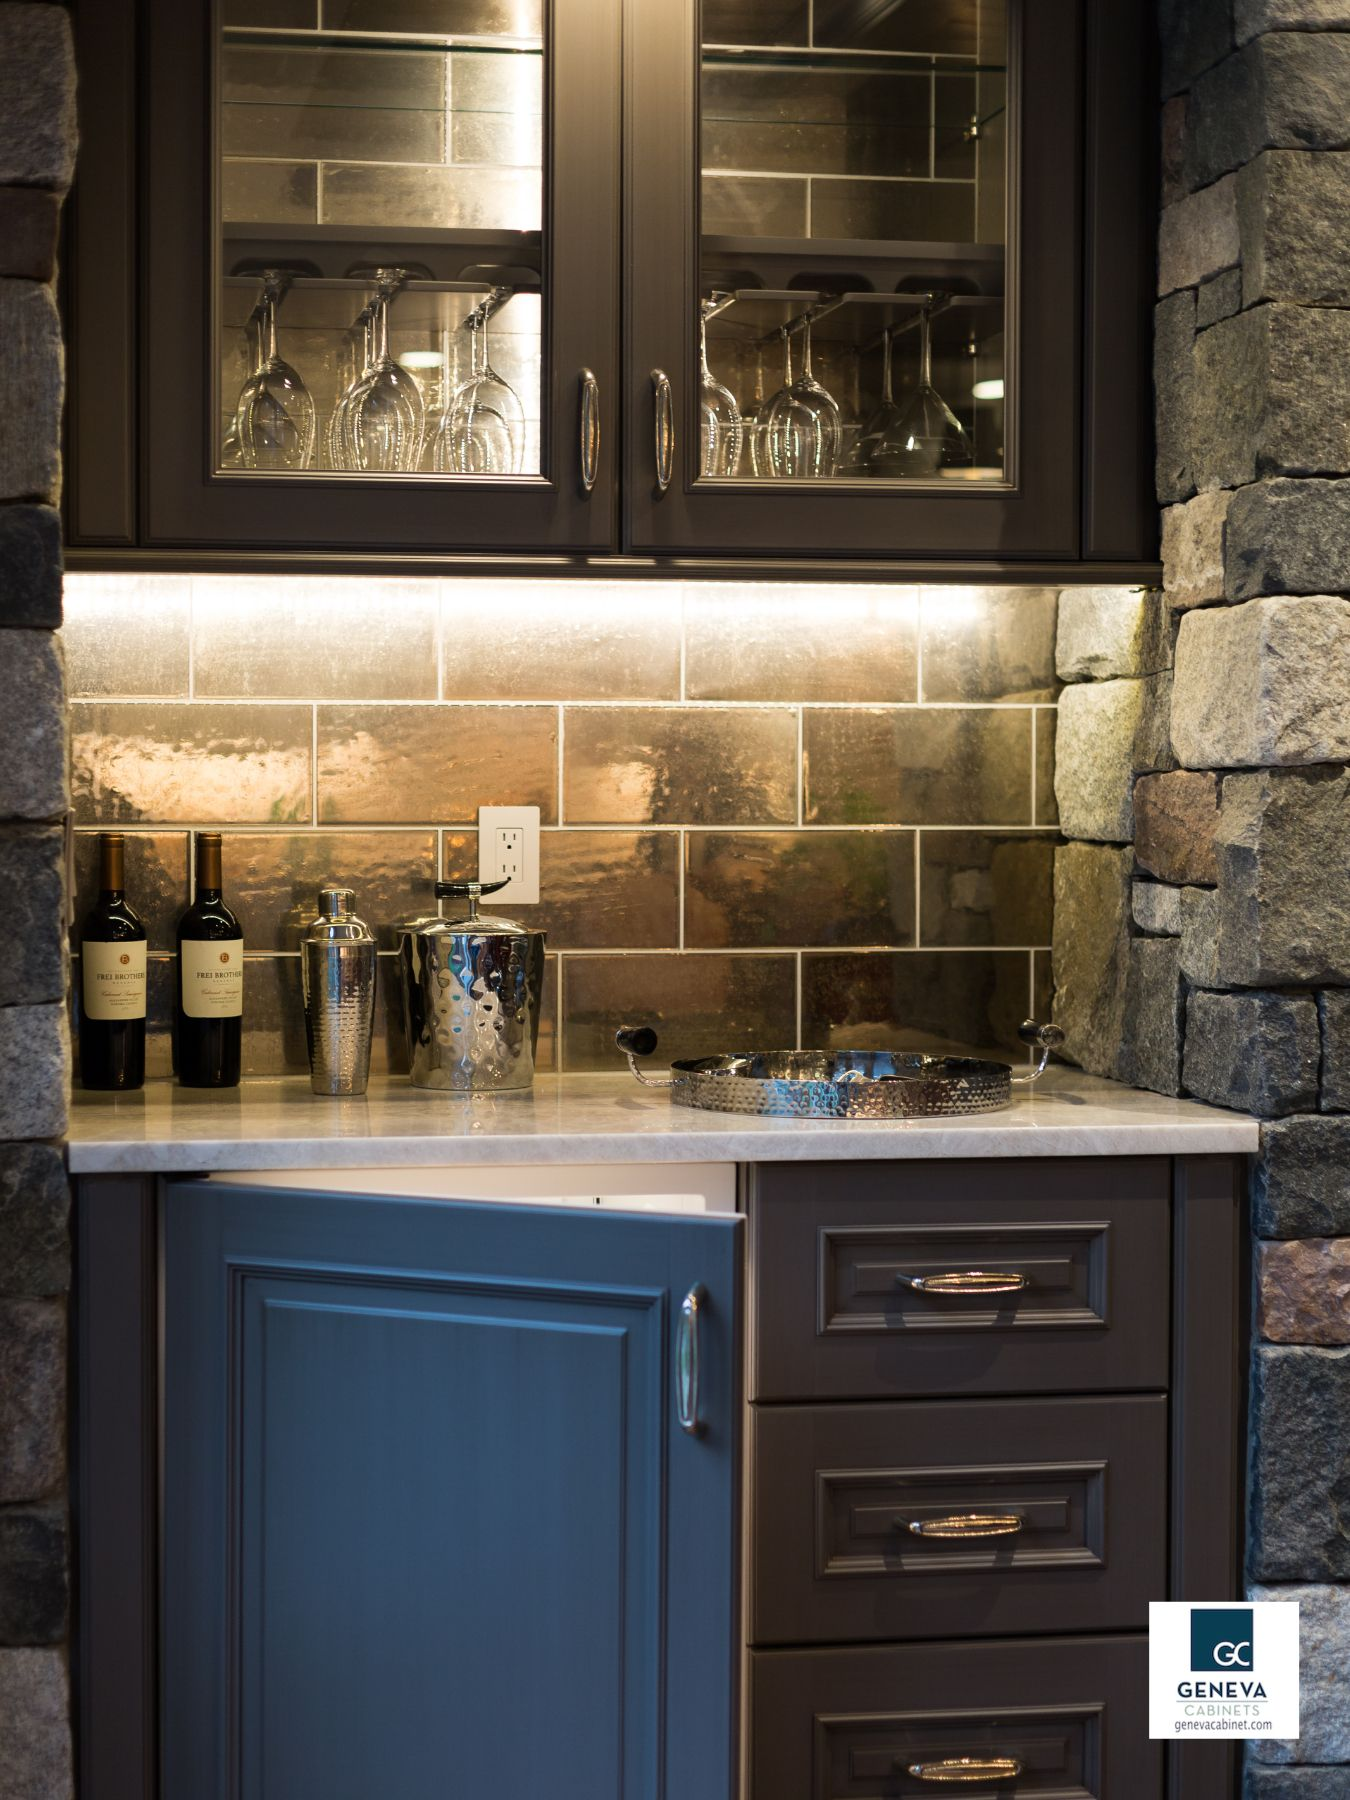 Top 10 Tips Prepare Your Kitchen For Holiday Entertaining Geneva Cabinet Company Llc Holiday Kitchen Kitchen Cabinet Companies